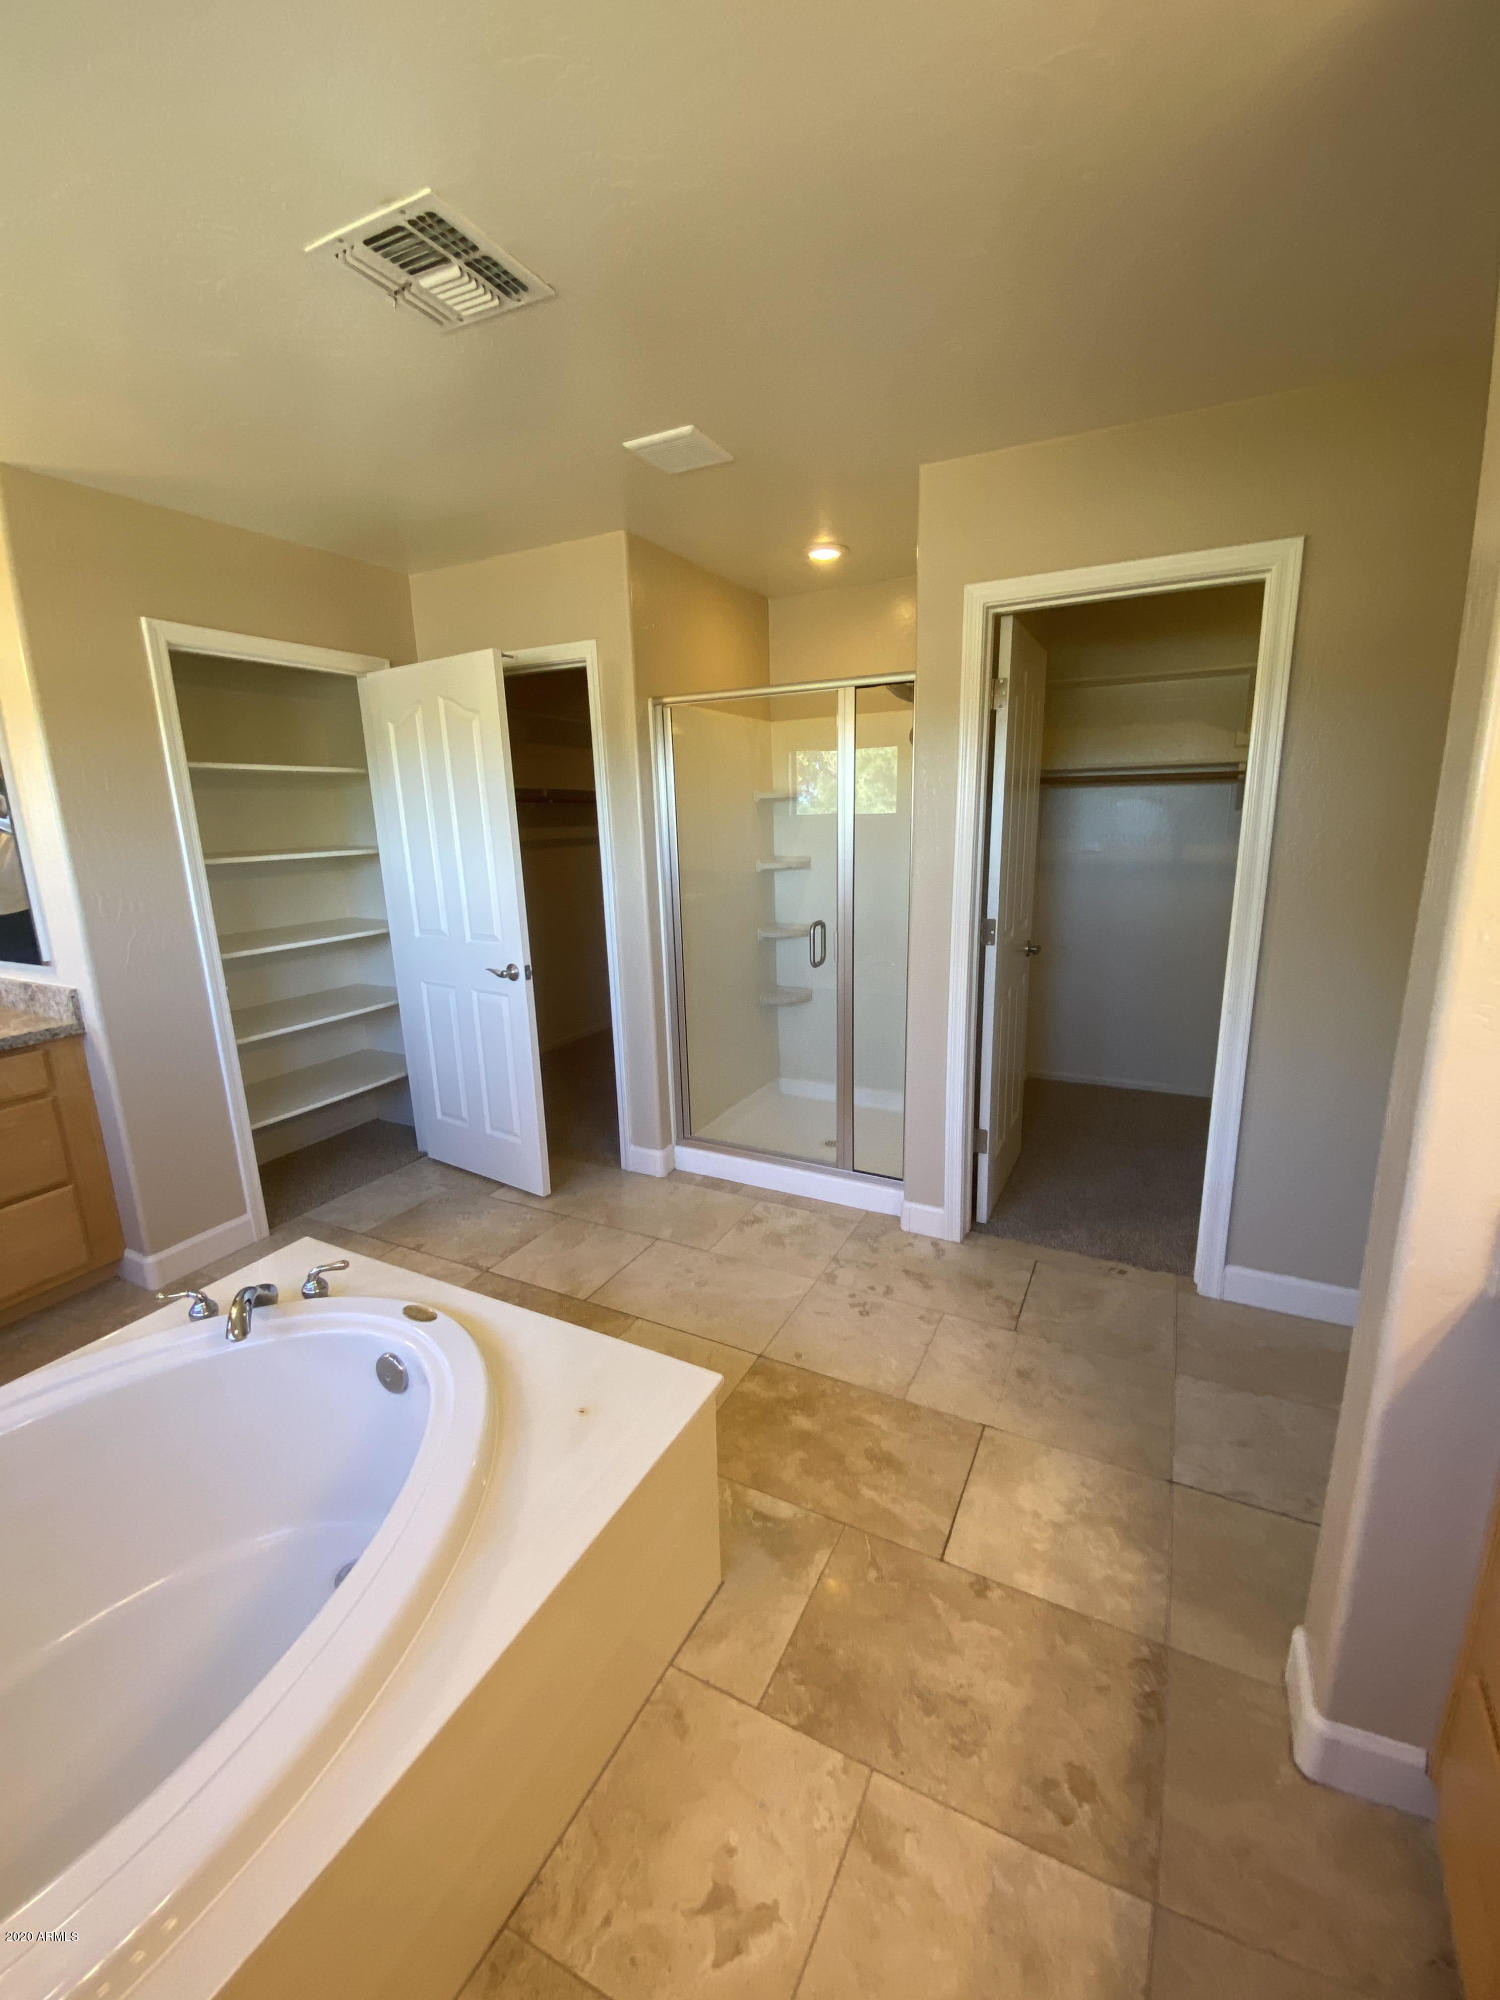 20329 S 187TH Place, Queen Creek, Arizona 85142, 6 Bedrooms Bedrooms, ,Residential,For Sale,20329 S 187TH Place,6029373